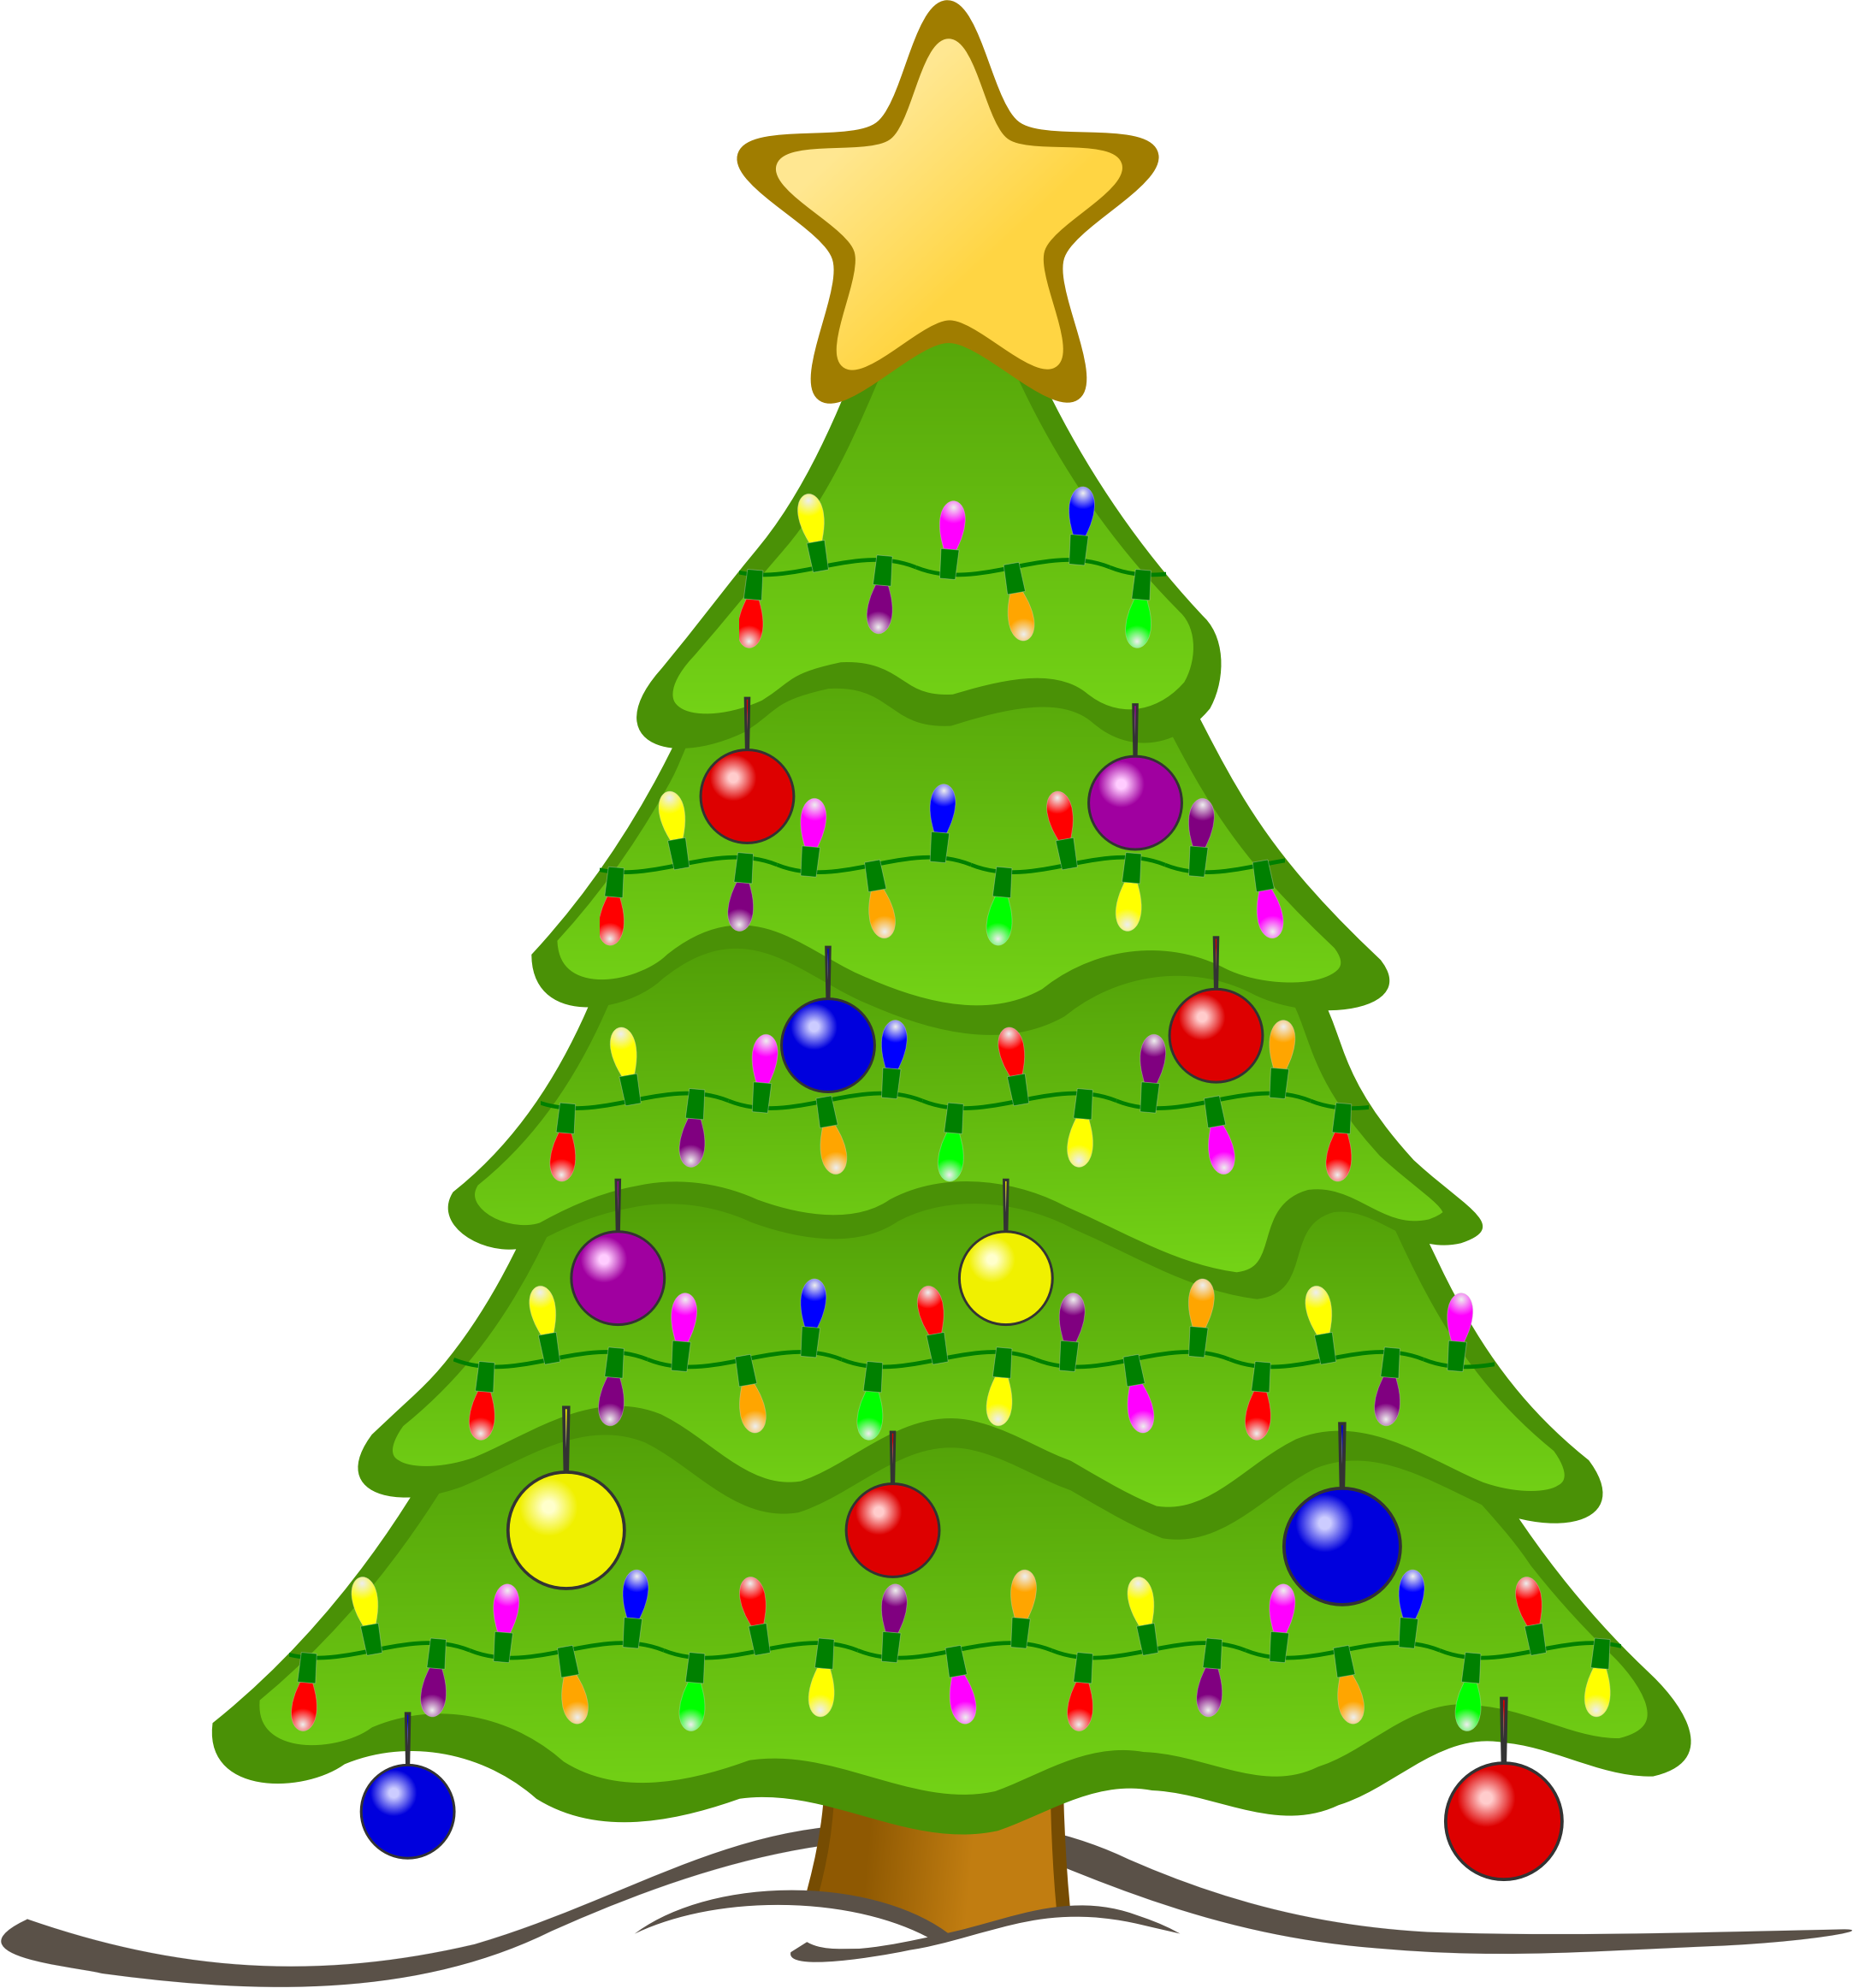 Animated Christmas Tree By Jaynick Rework Of Sapin 01 Xmas By Jean Victor Balin Kept The Animated Christmas Tree Christmas Tree Pictures Animated Christmas